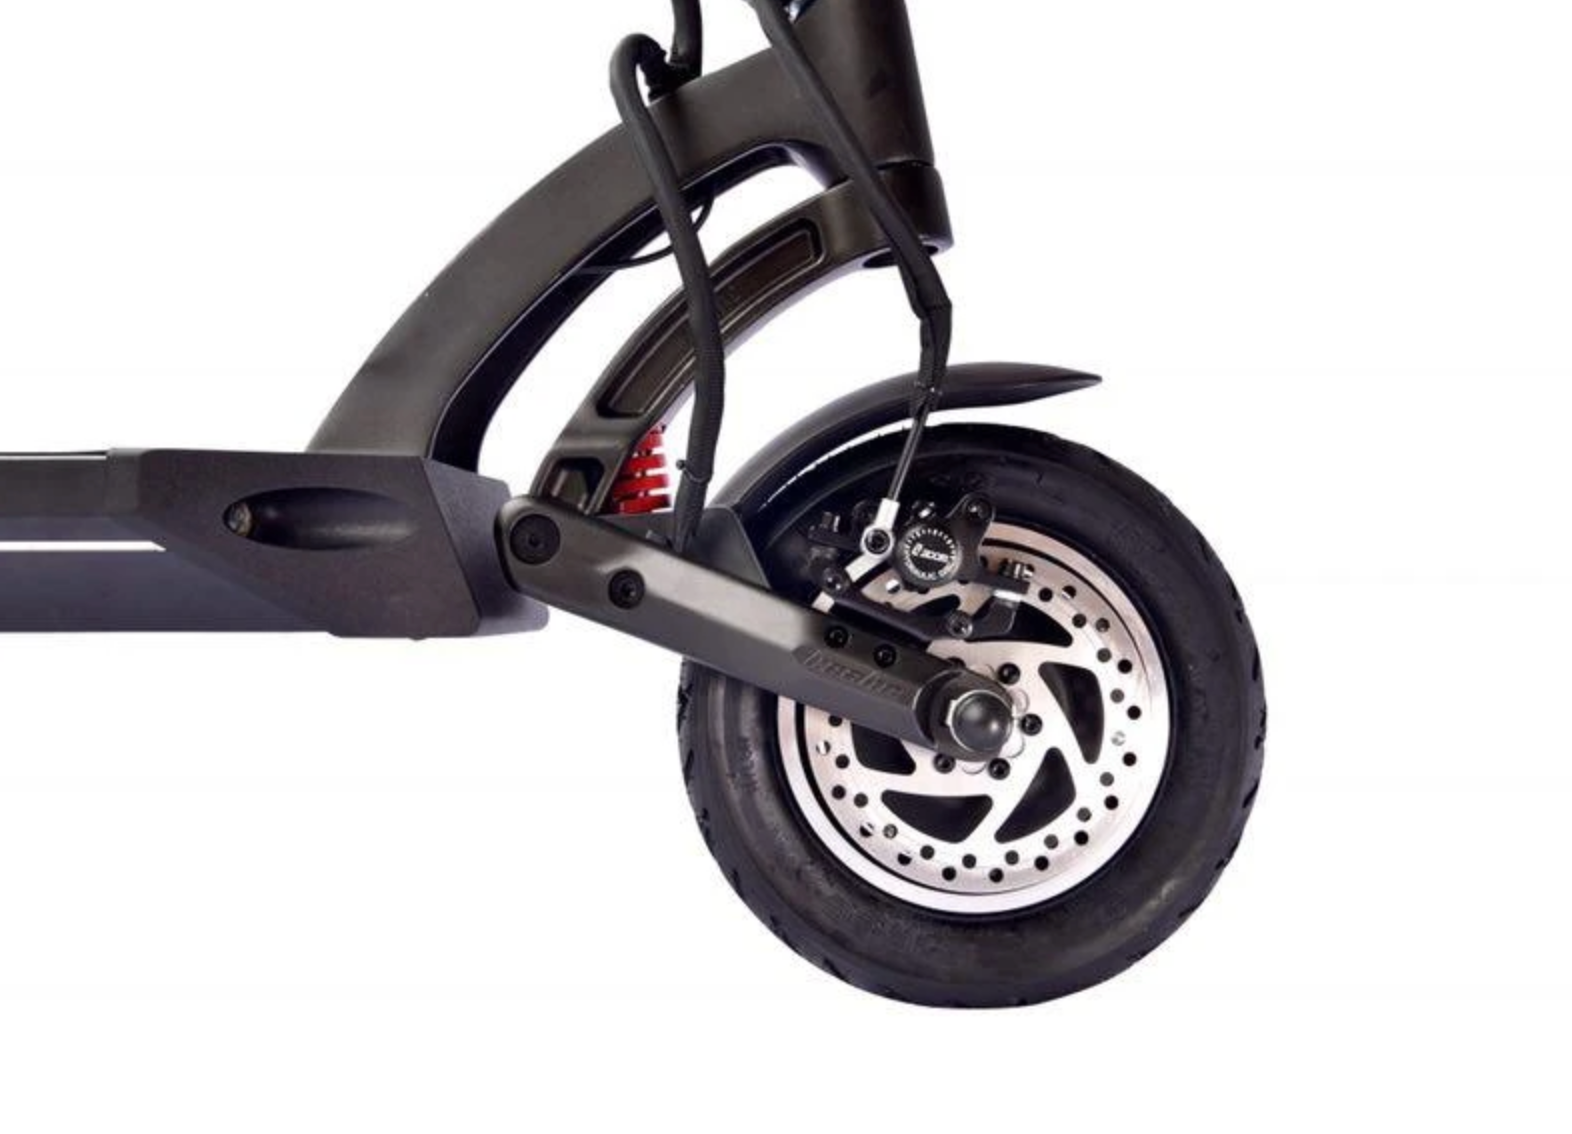 Kaabo Mantis Pro Electric Scooter Front Suspension Image